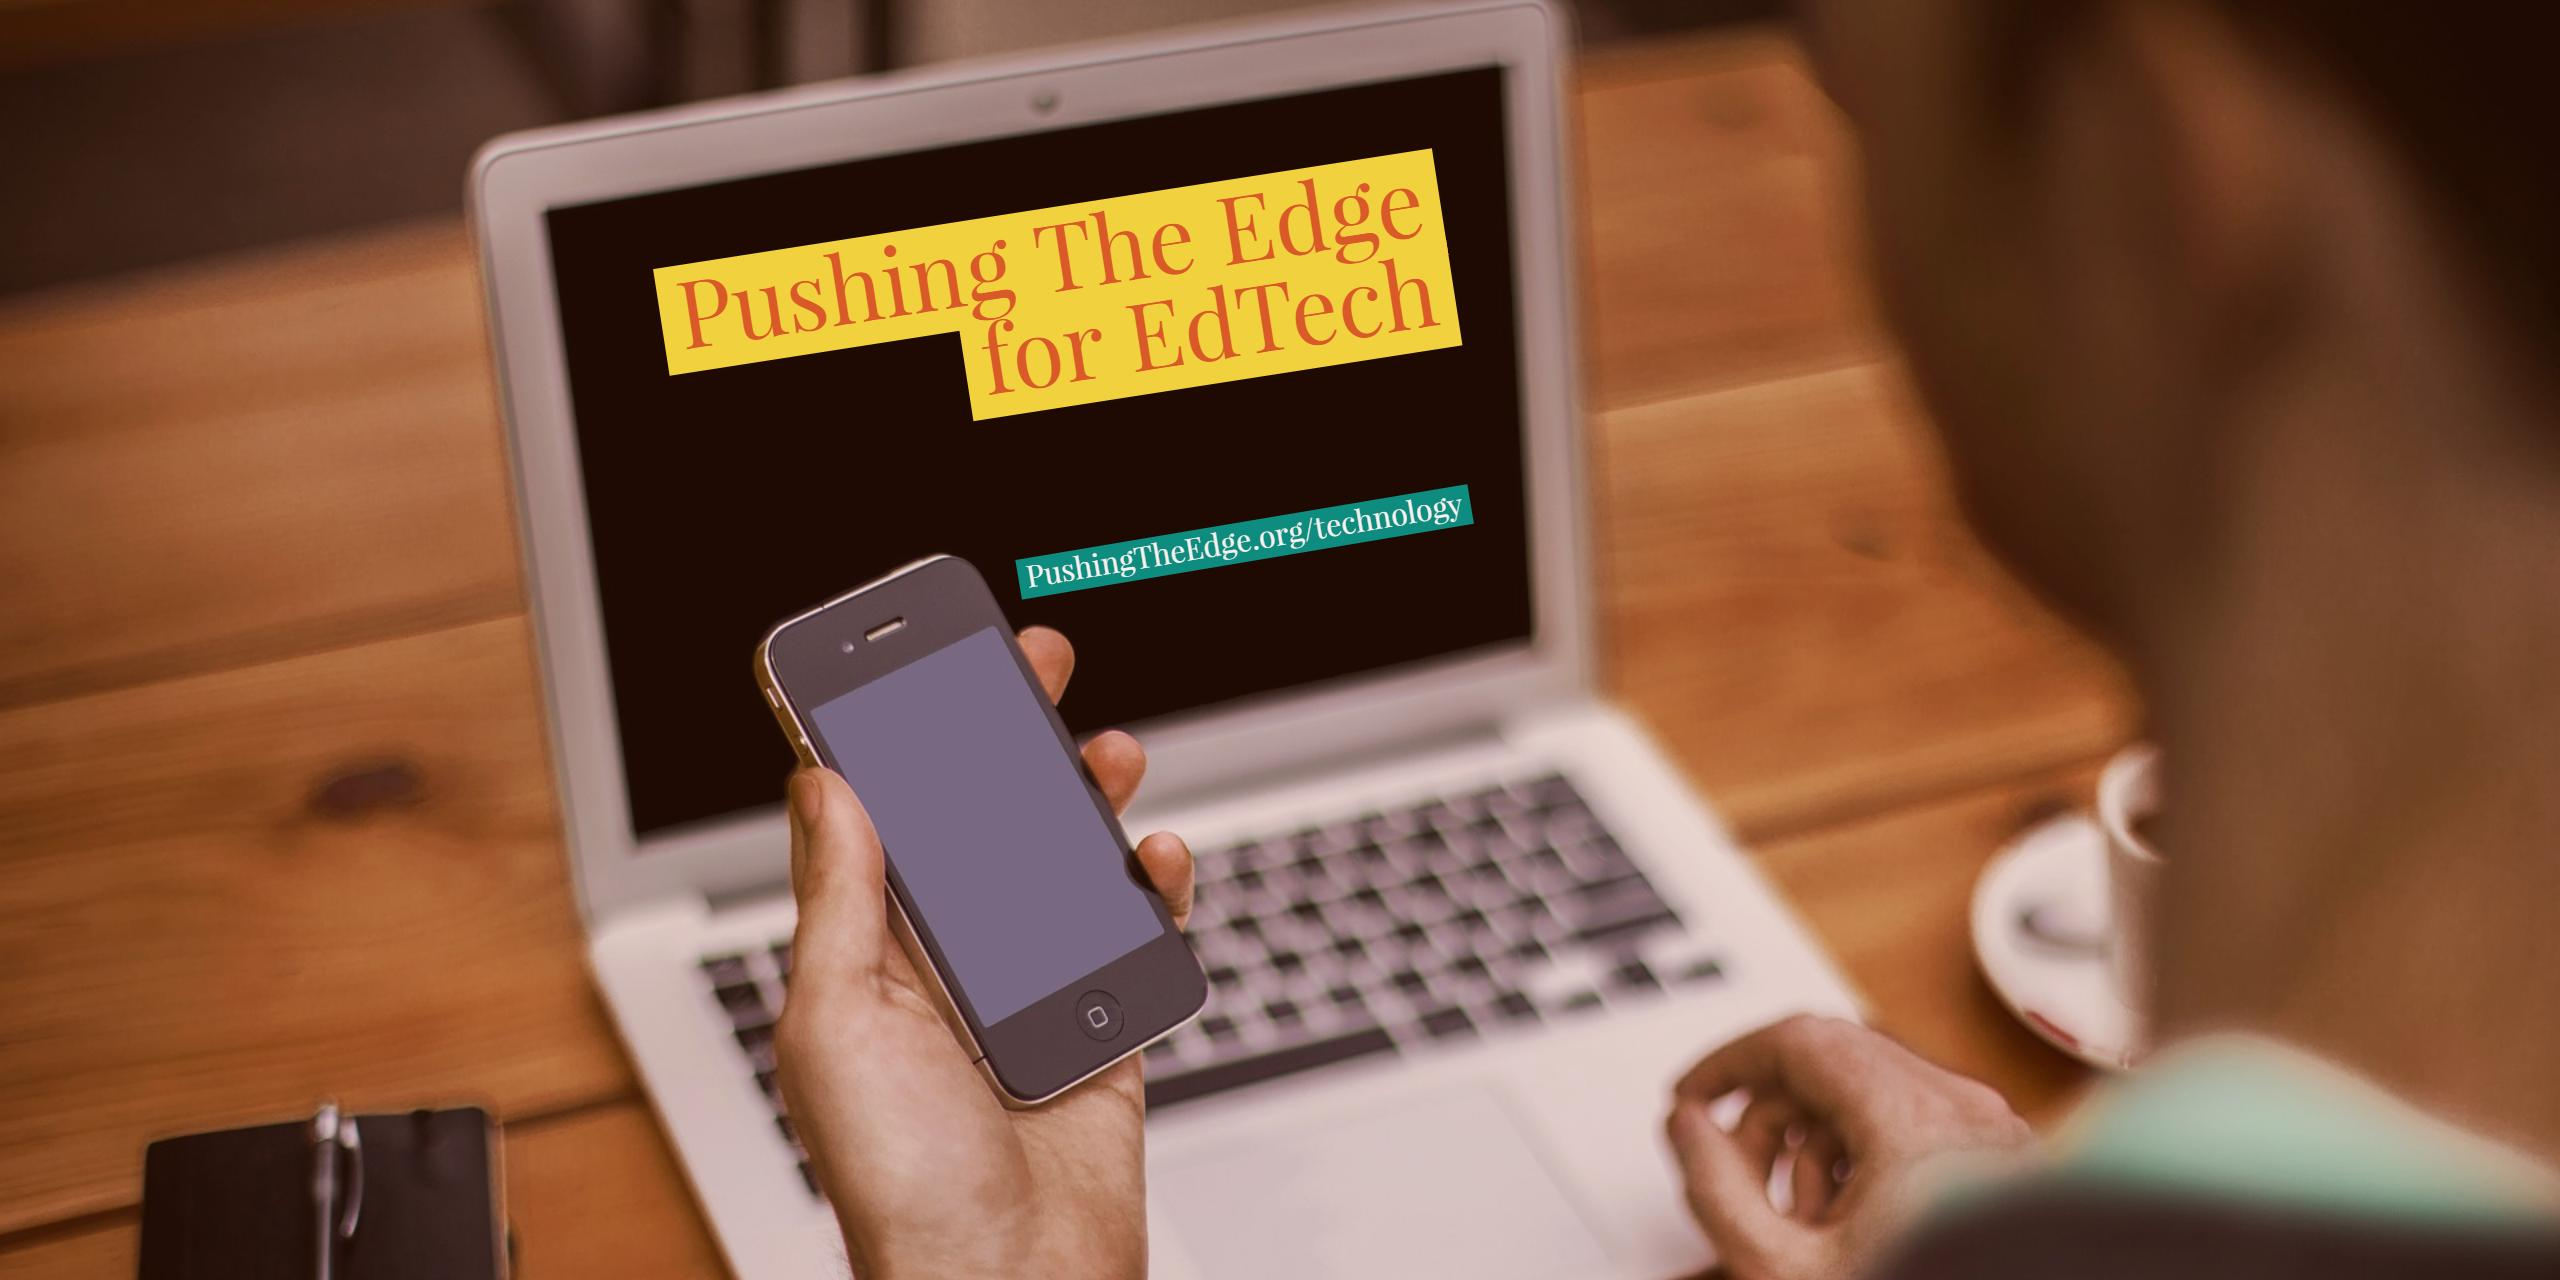 Pushing The Edge for Edtech